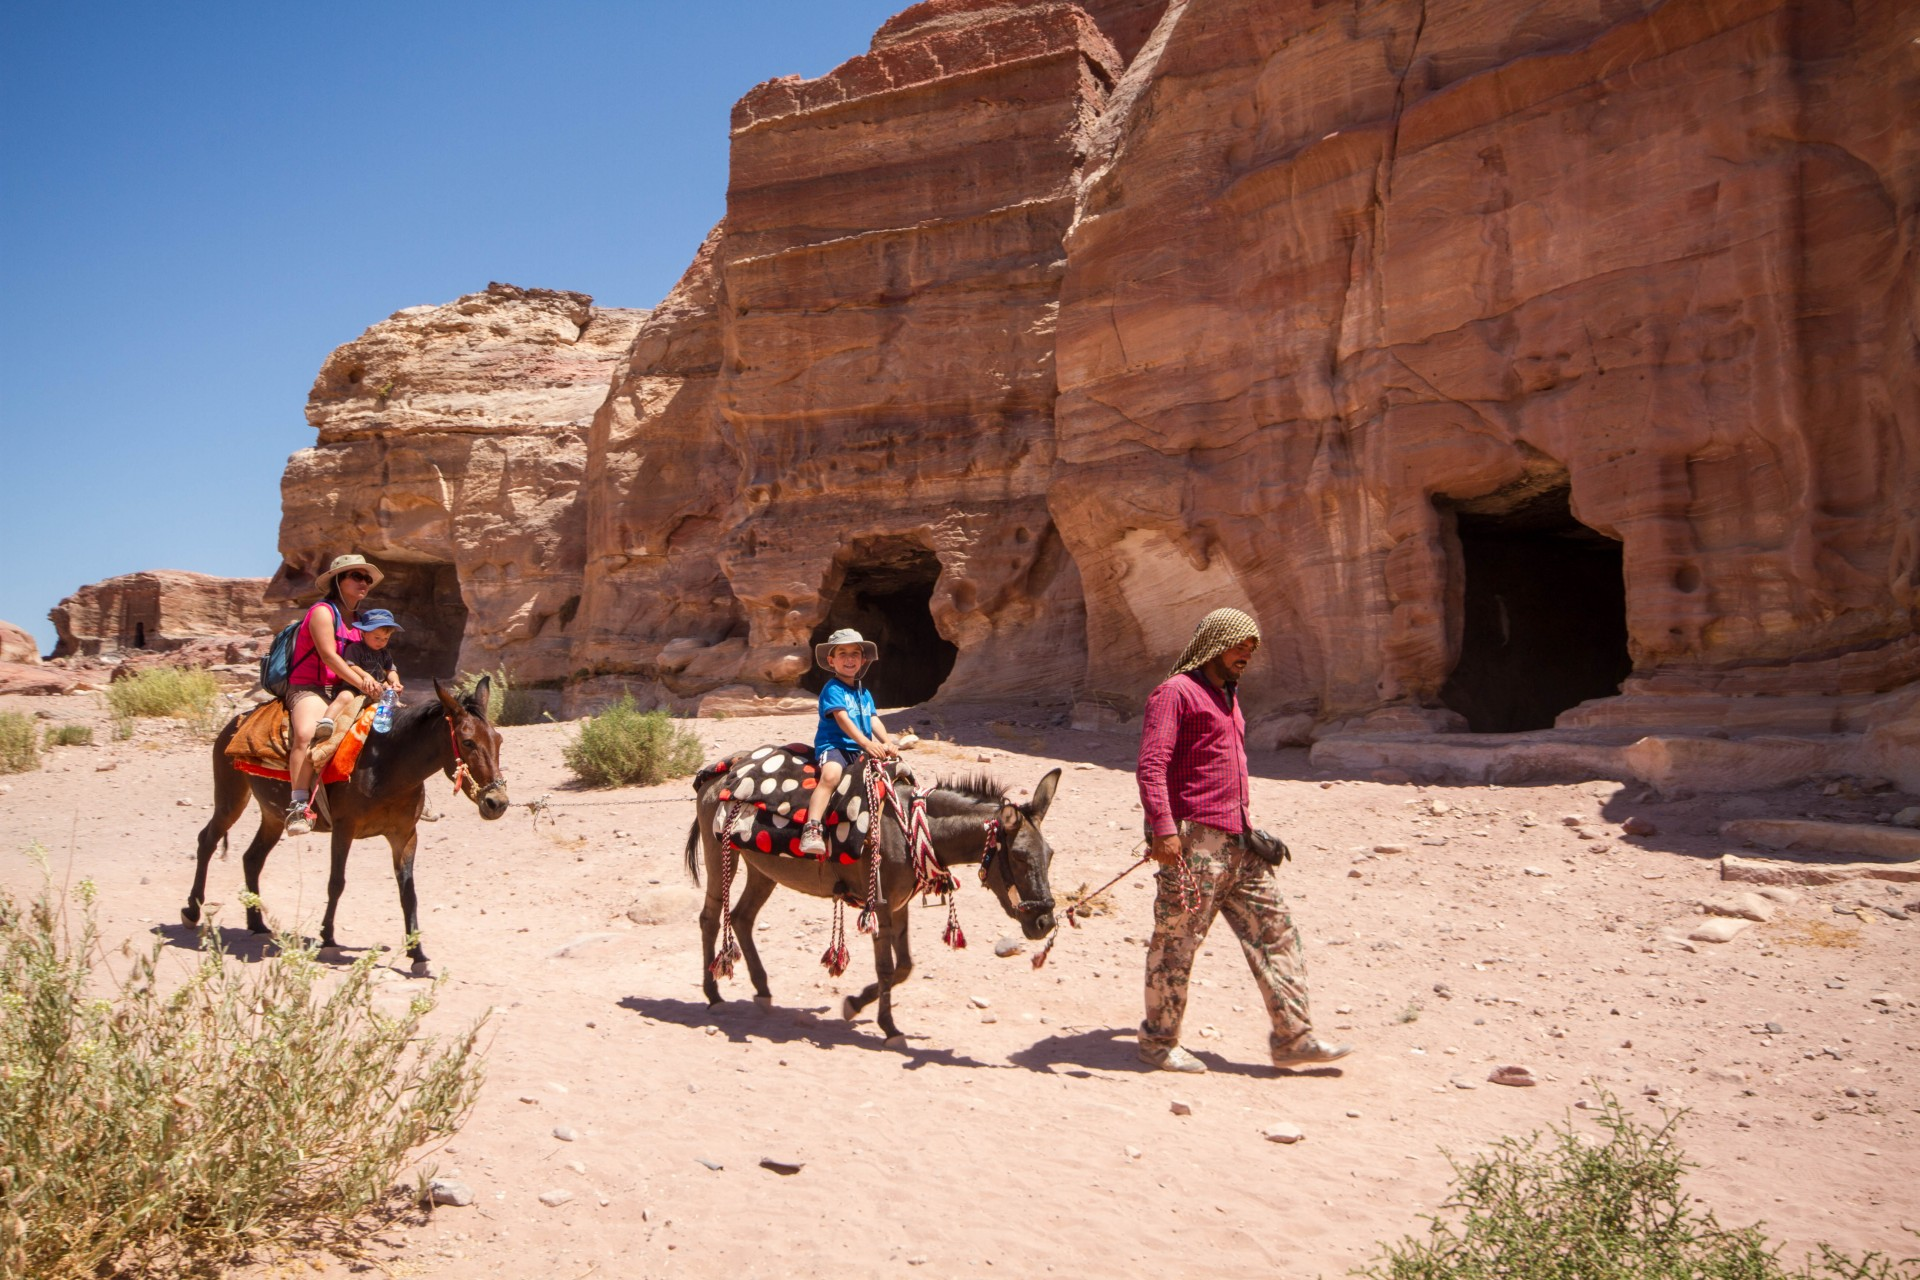 A family rides horses guided by a local in Petra